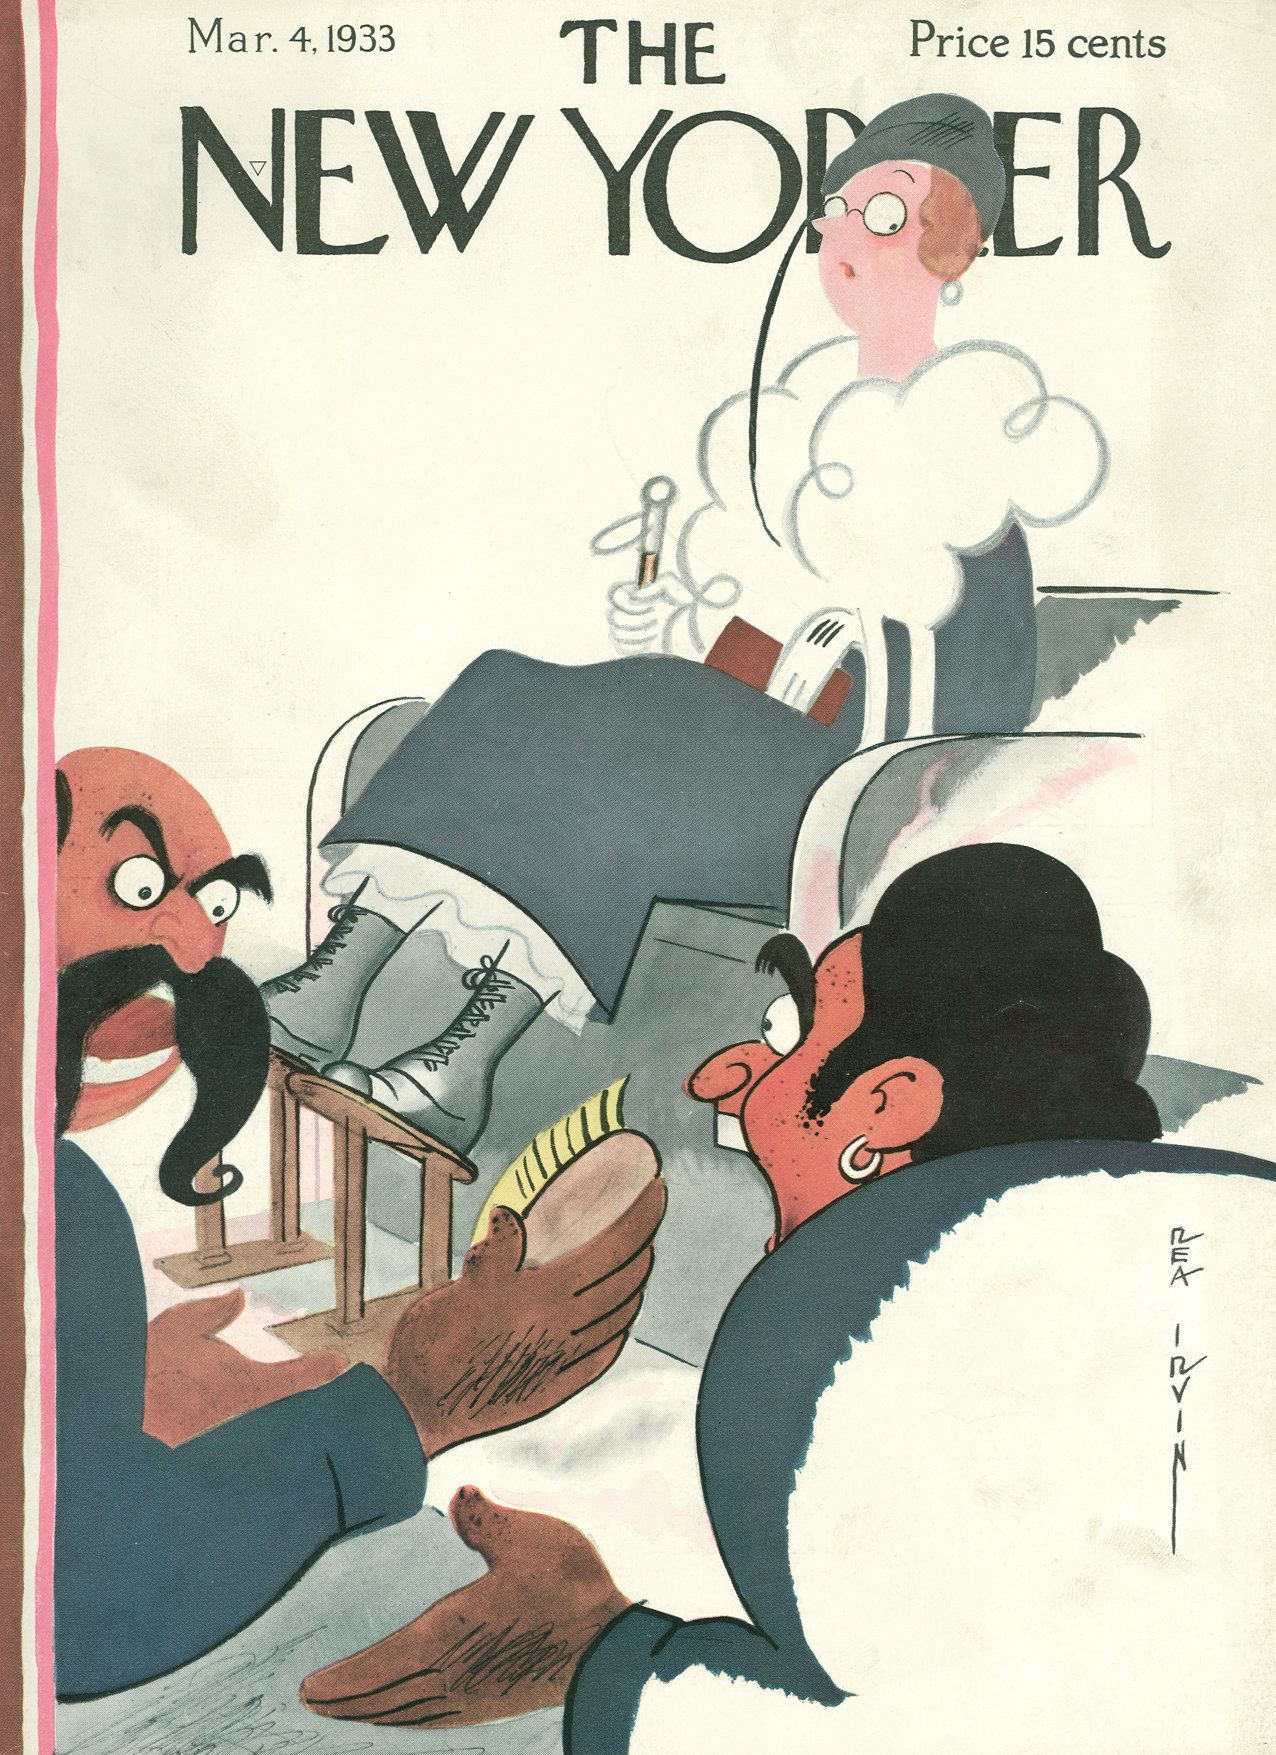 The New Yorker - Saturday, March 4, 1933 - Issue # 420 - Vol. 9 - N° 3 - Cover by : Rea Irvin